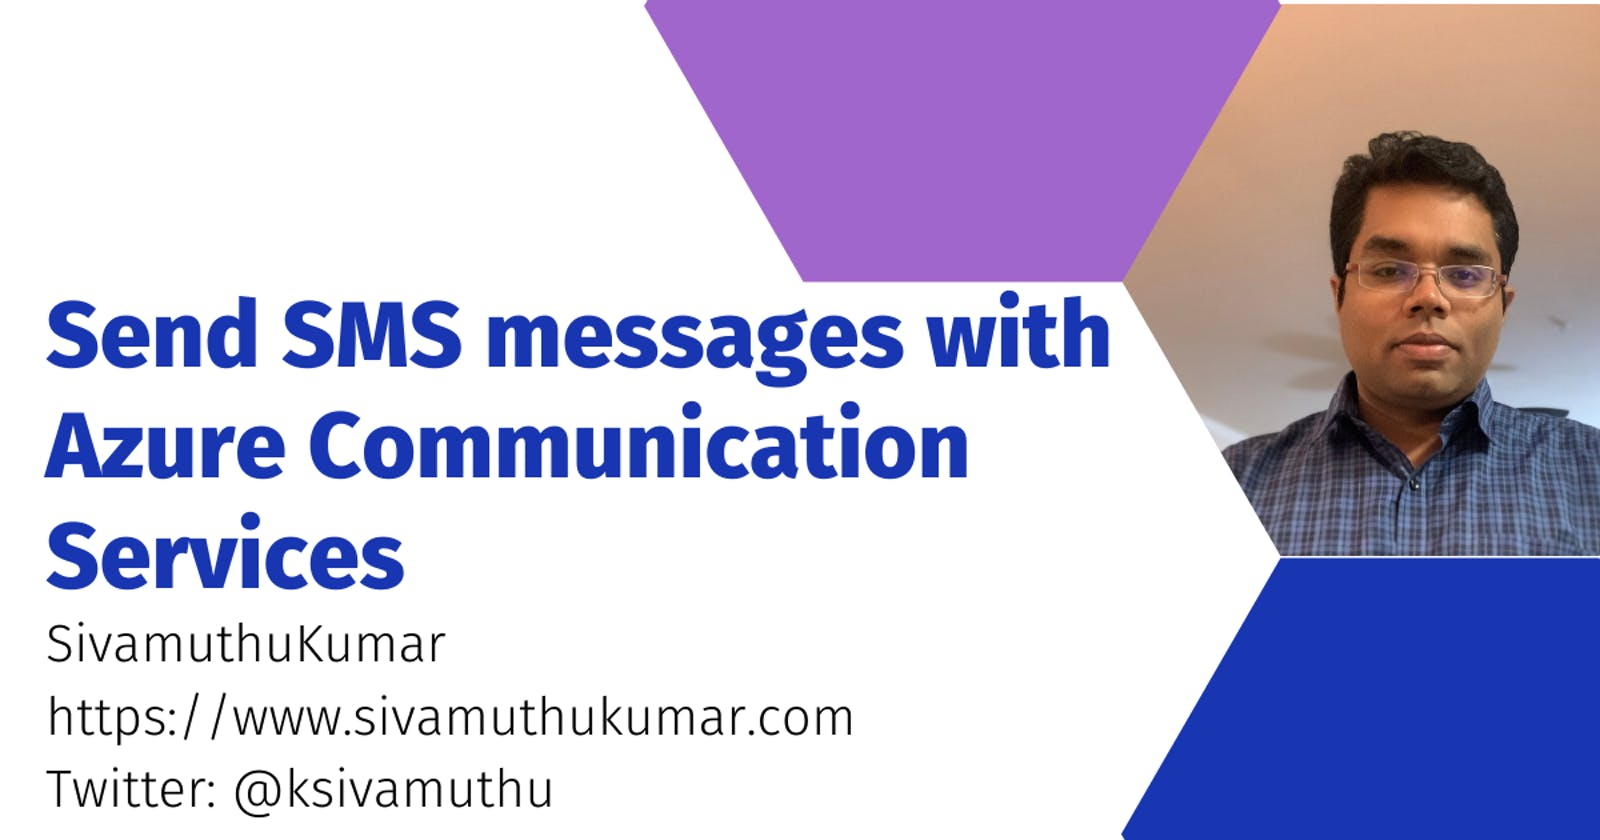 Send SMS messages with Azure Communication Services